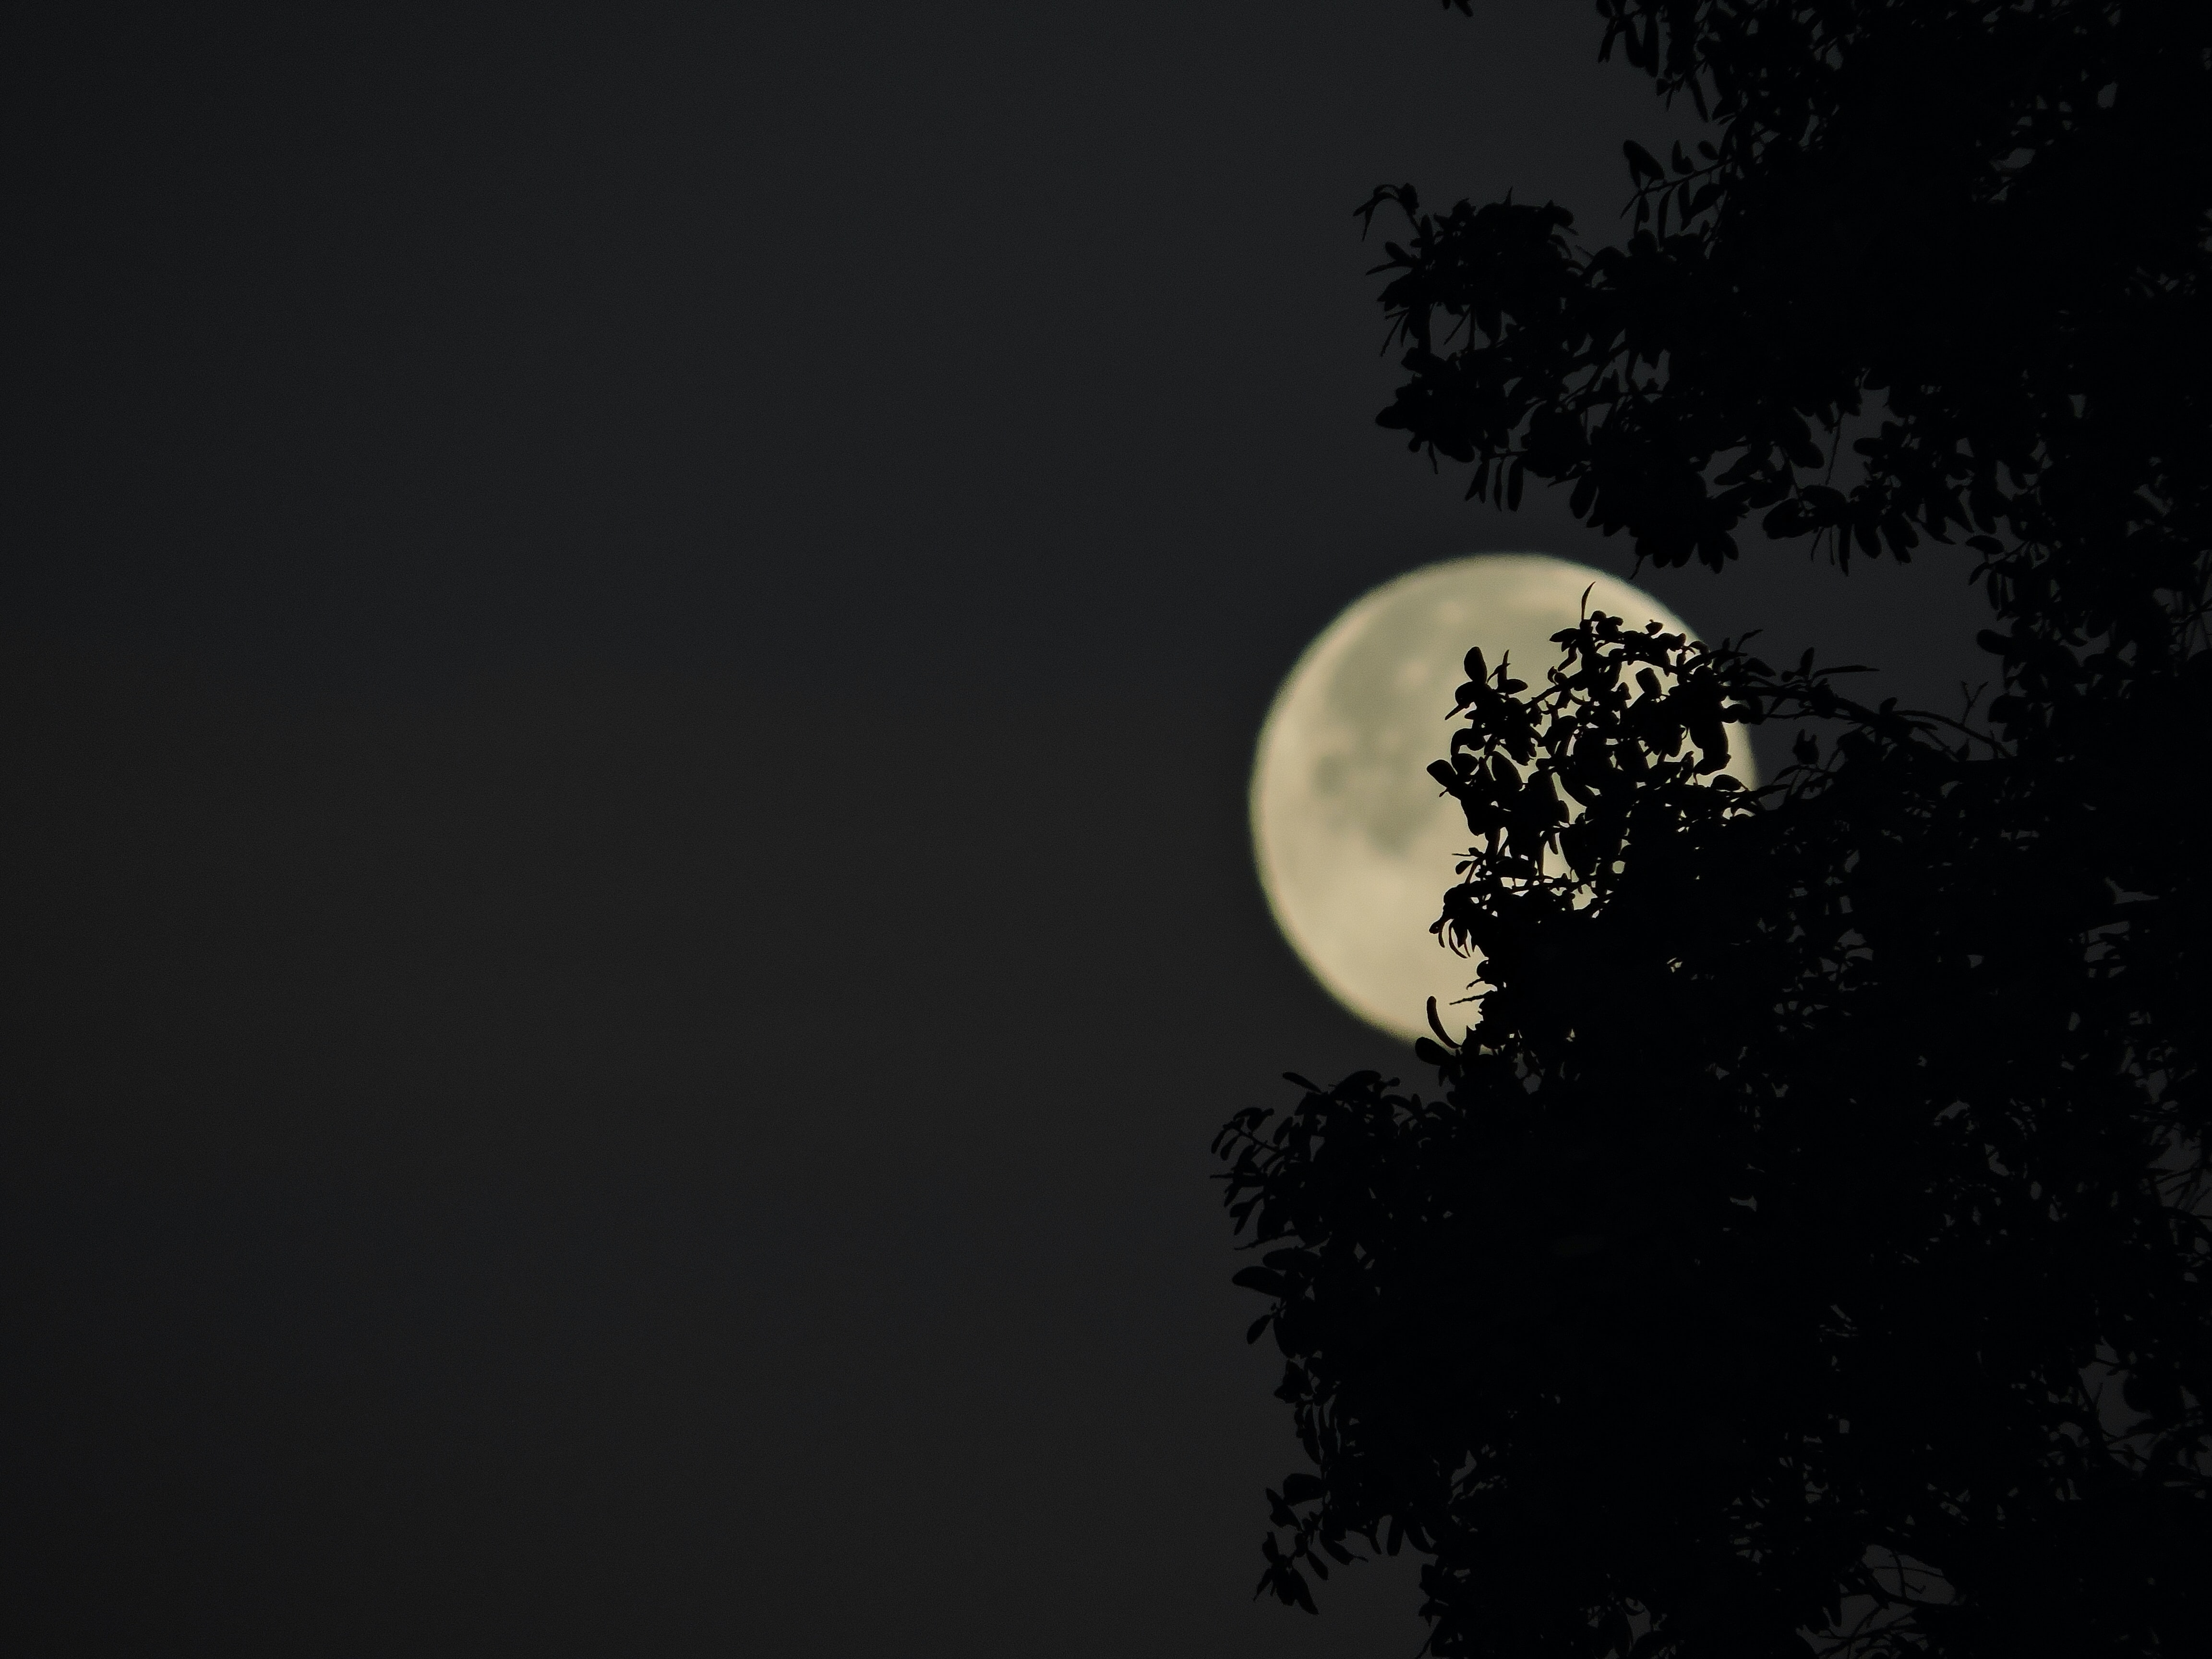 full moon covering tree leaves